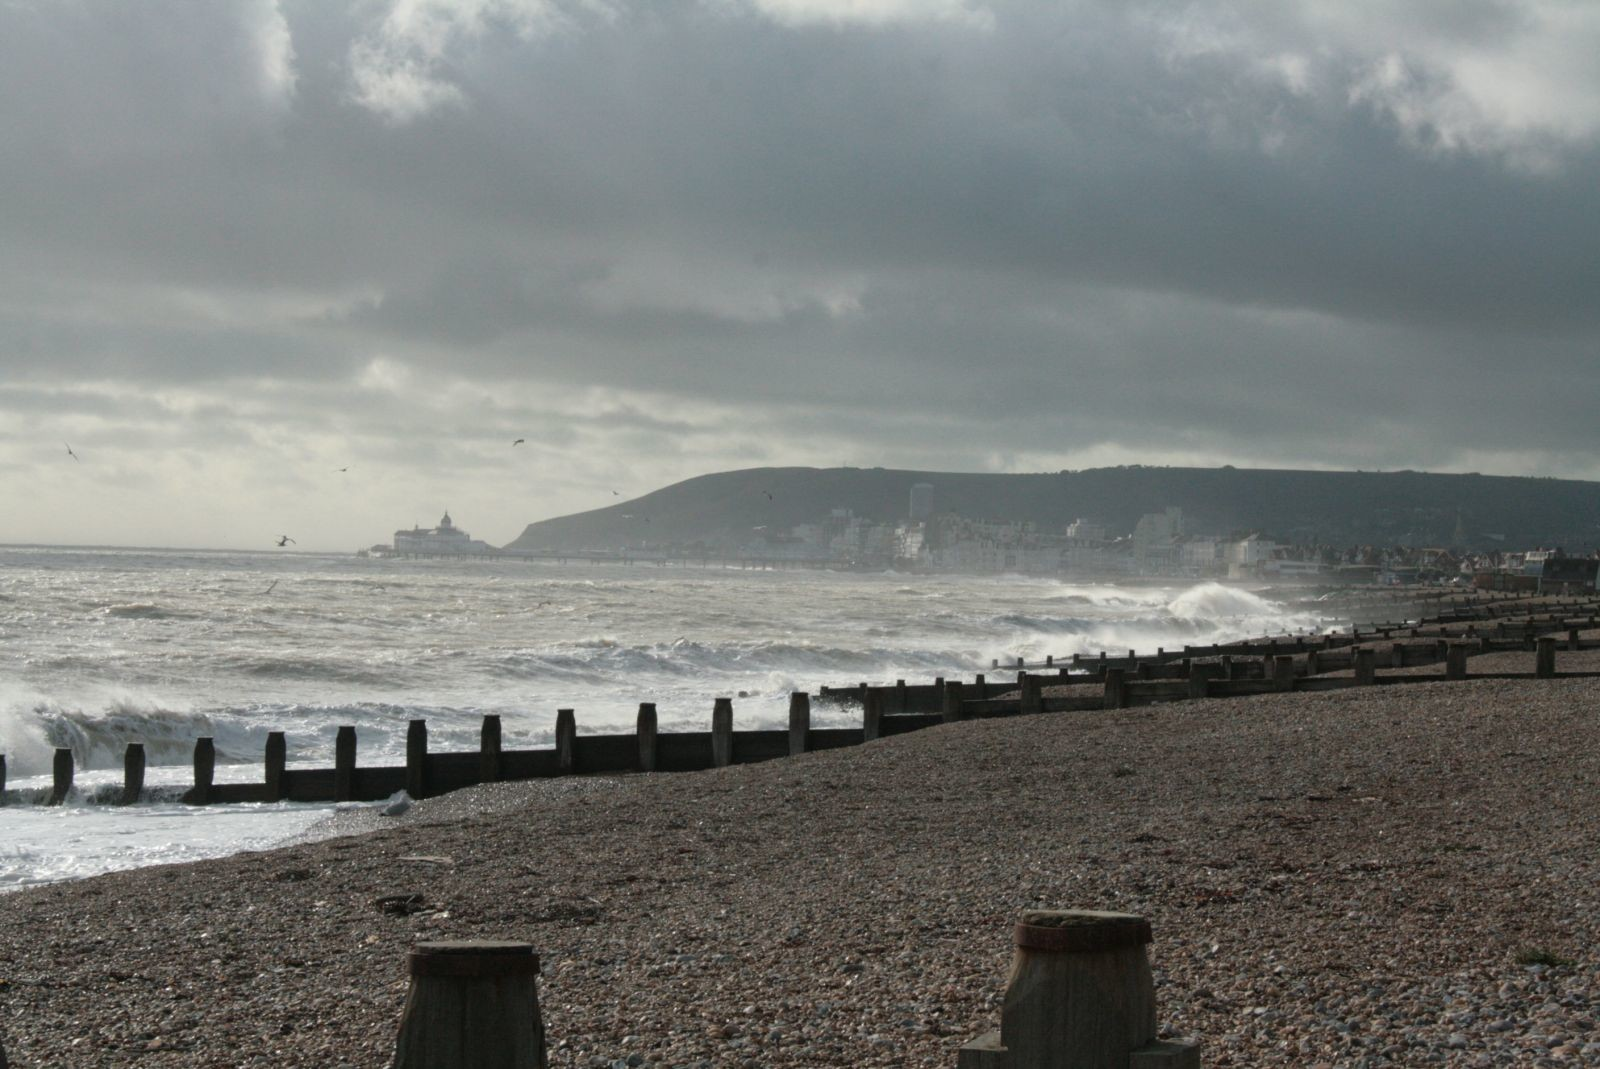 Seafront 041112 (18)